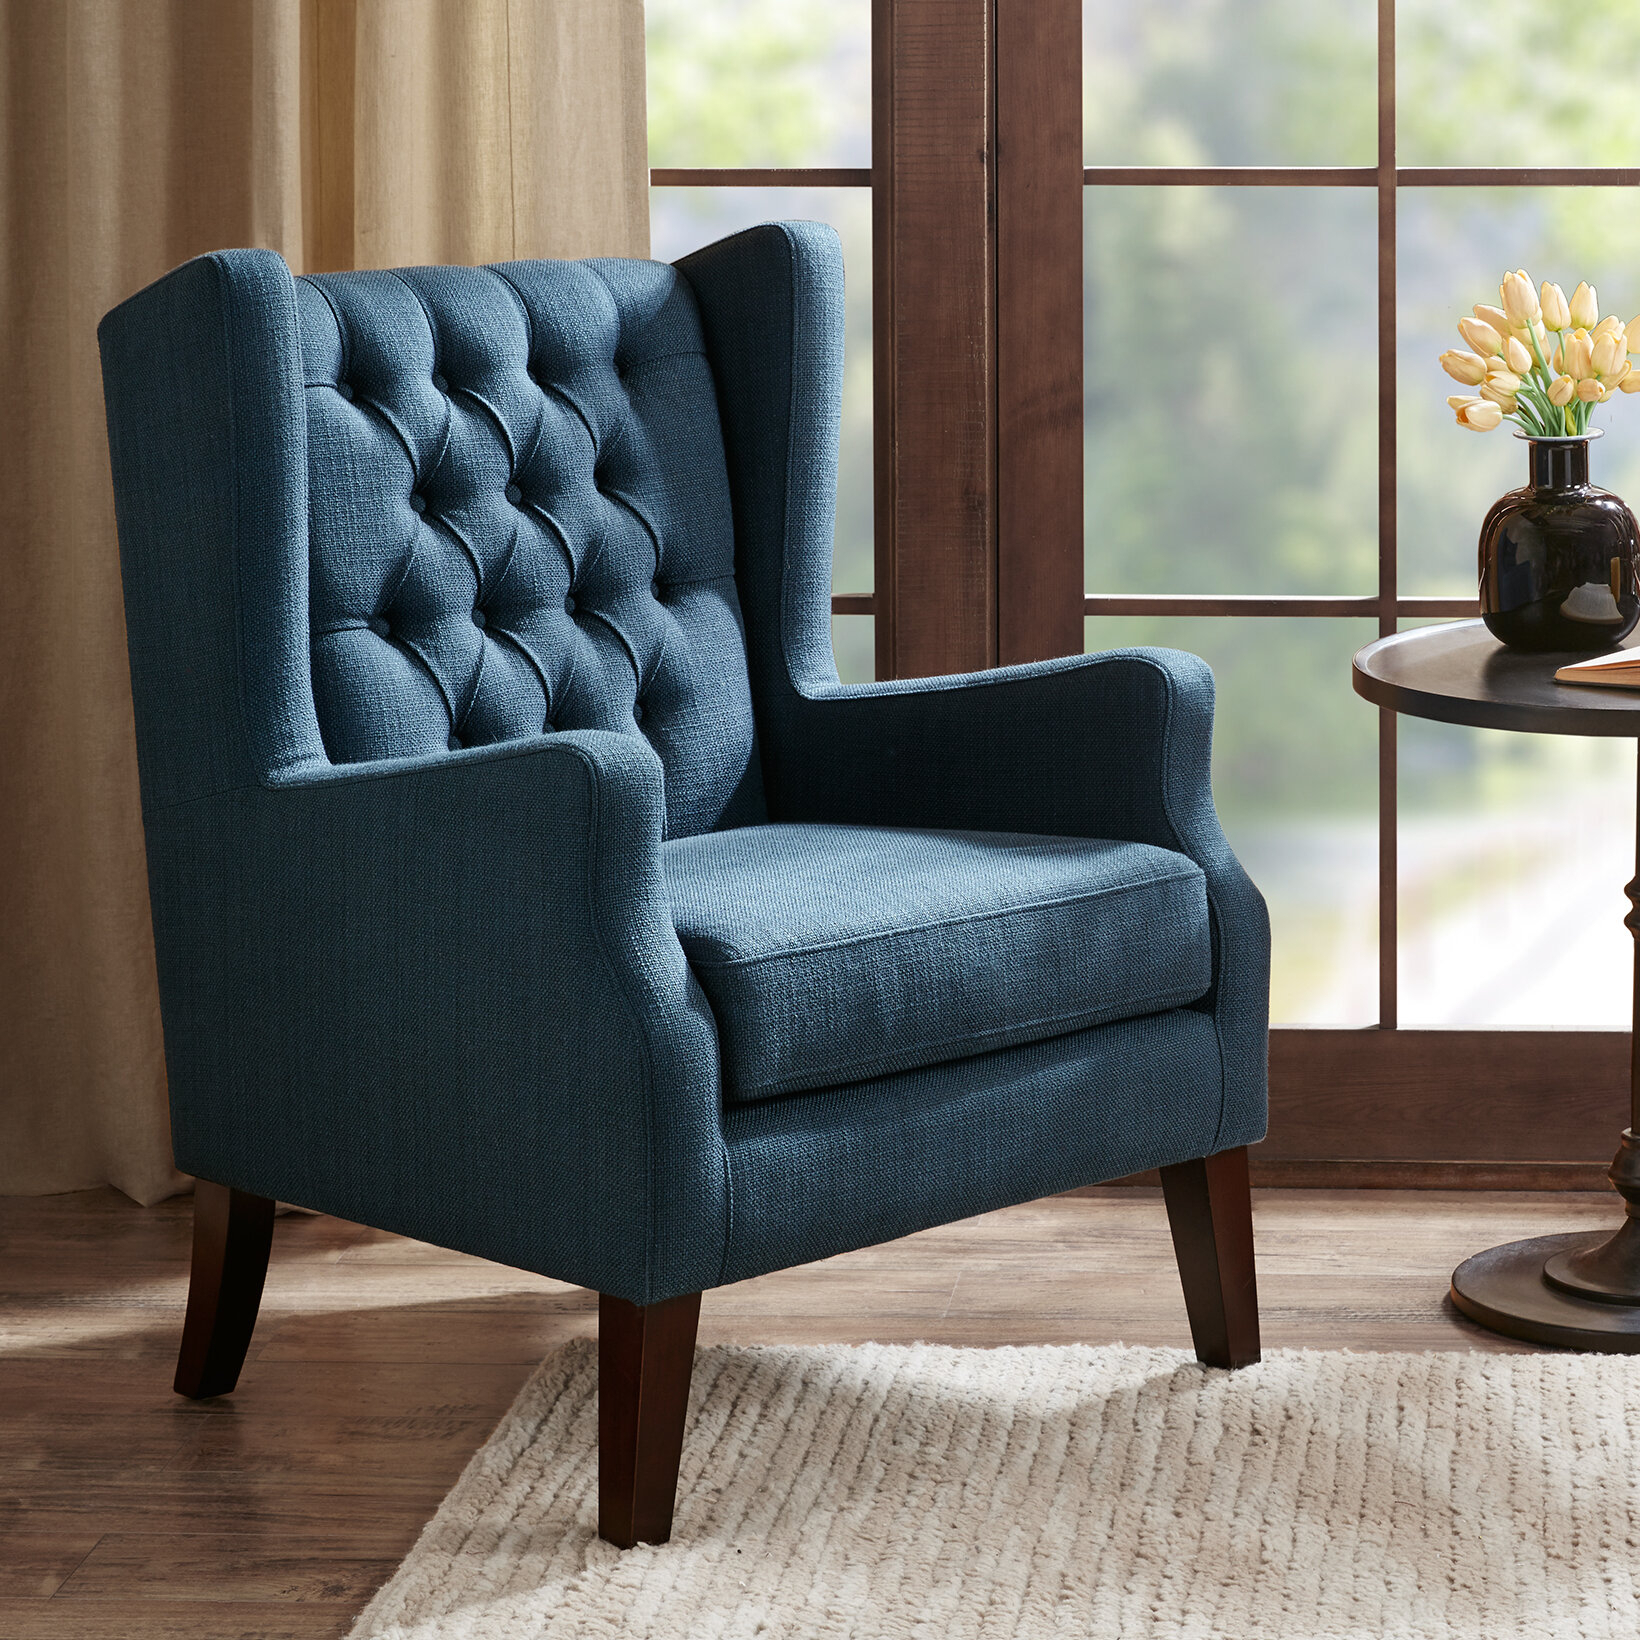 Allis Wingback Chair In Allis Tufted Polyester Blend Wingback Chairs (View 2 of 15)